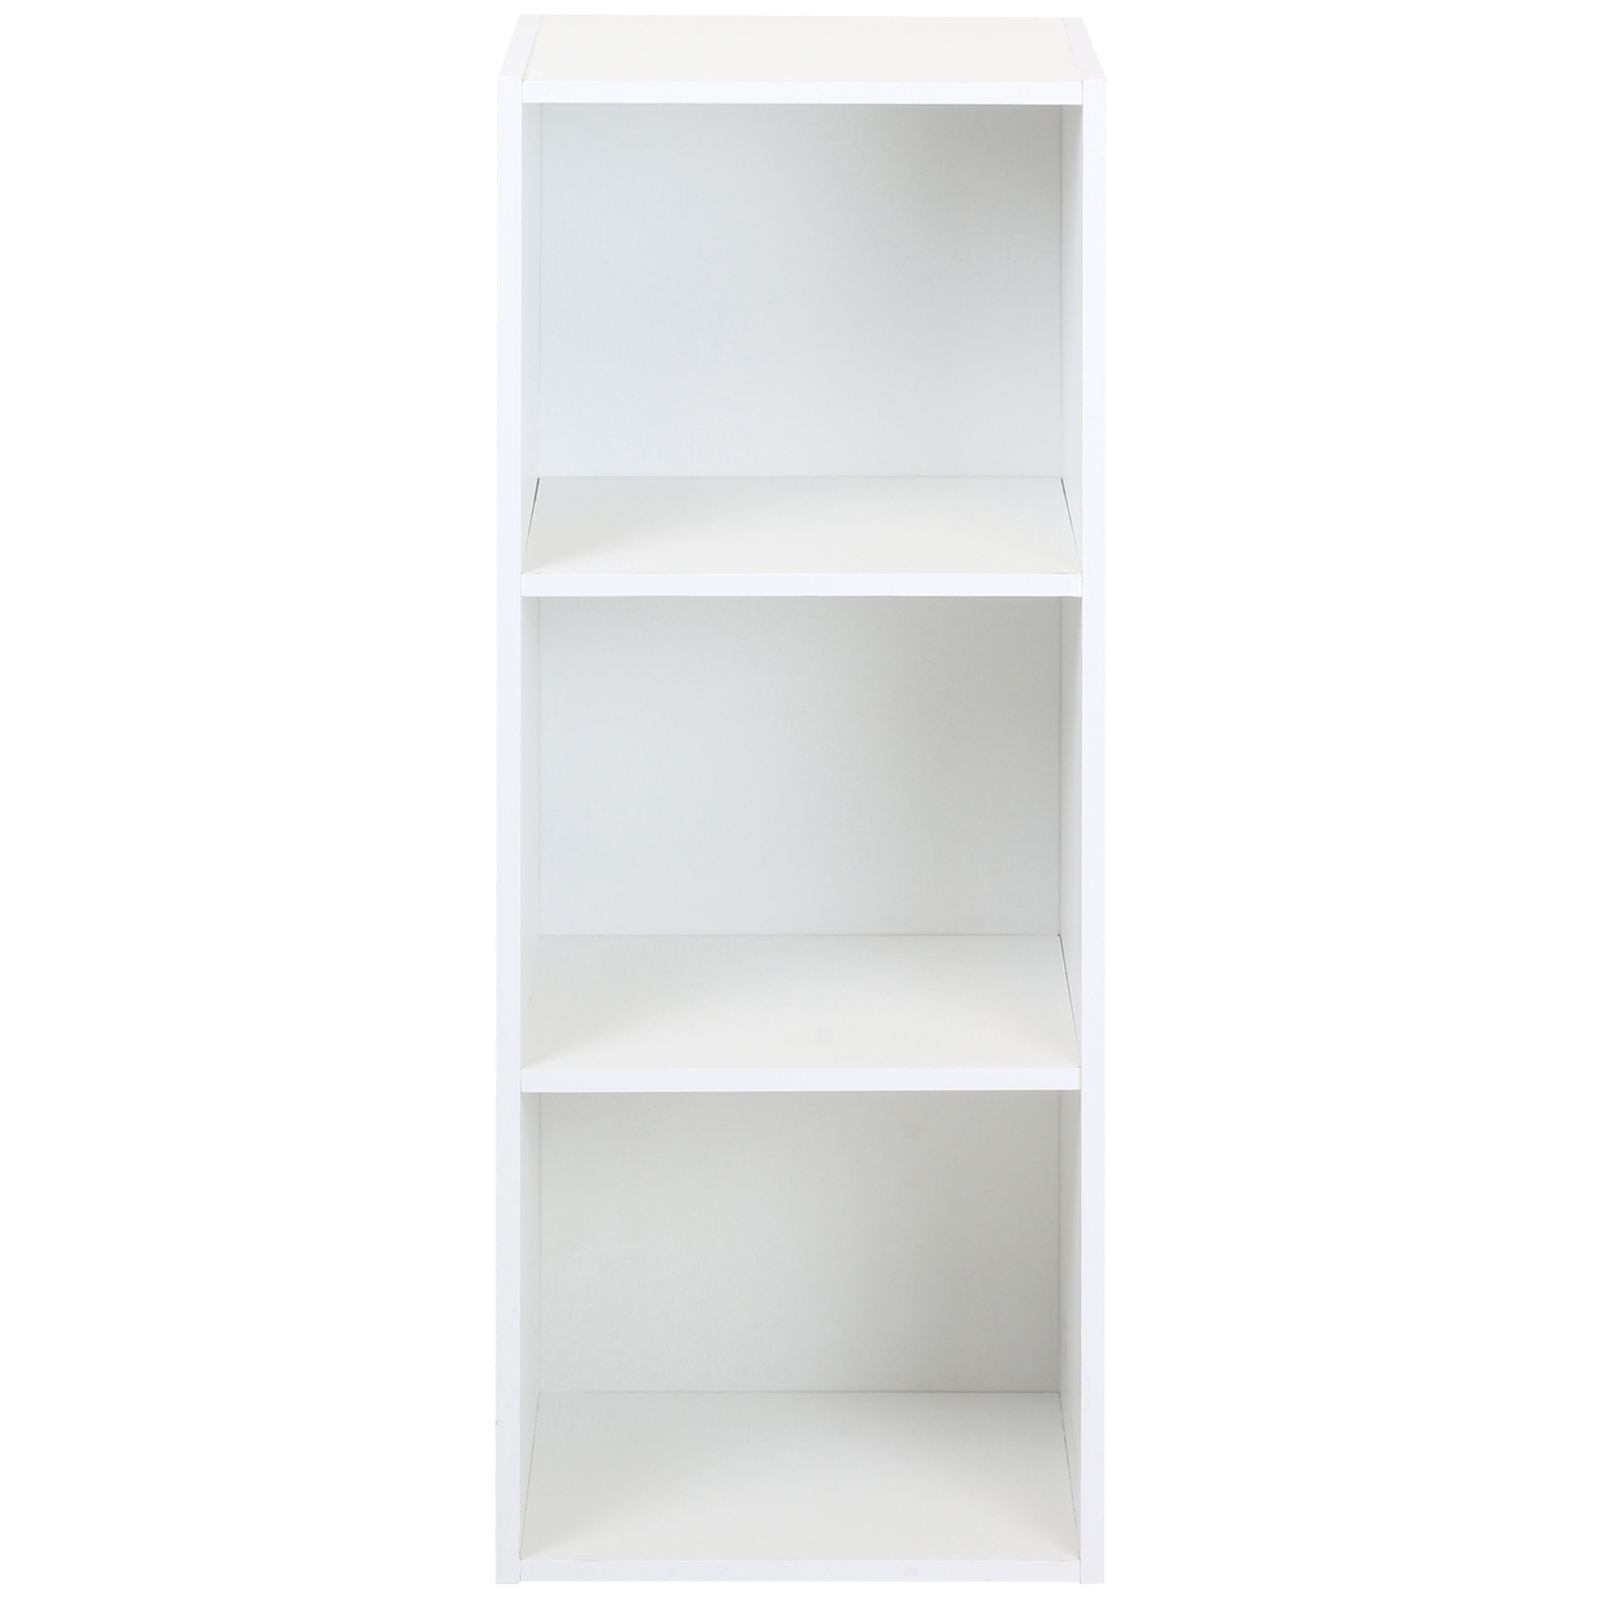 Sentinel Hartleys 3 Tier White Bookcase Wooden Display Shelving Unit Fabric Storage Box